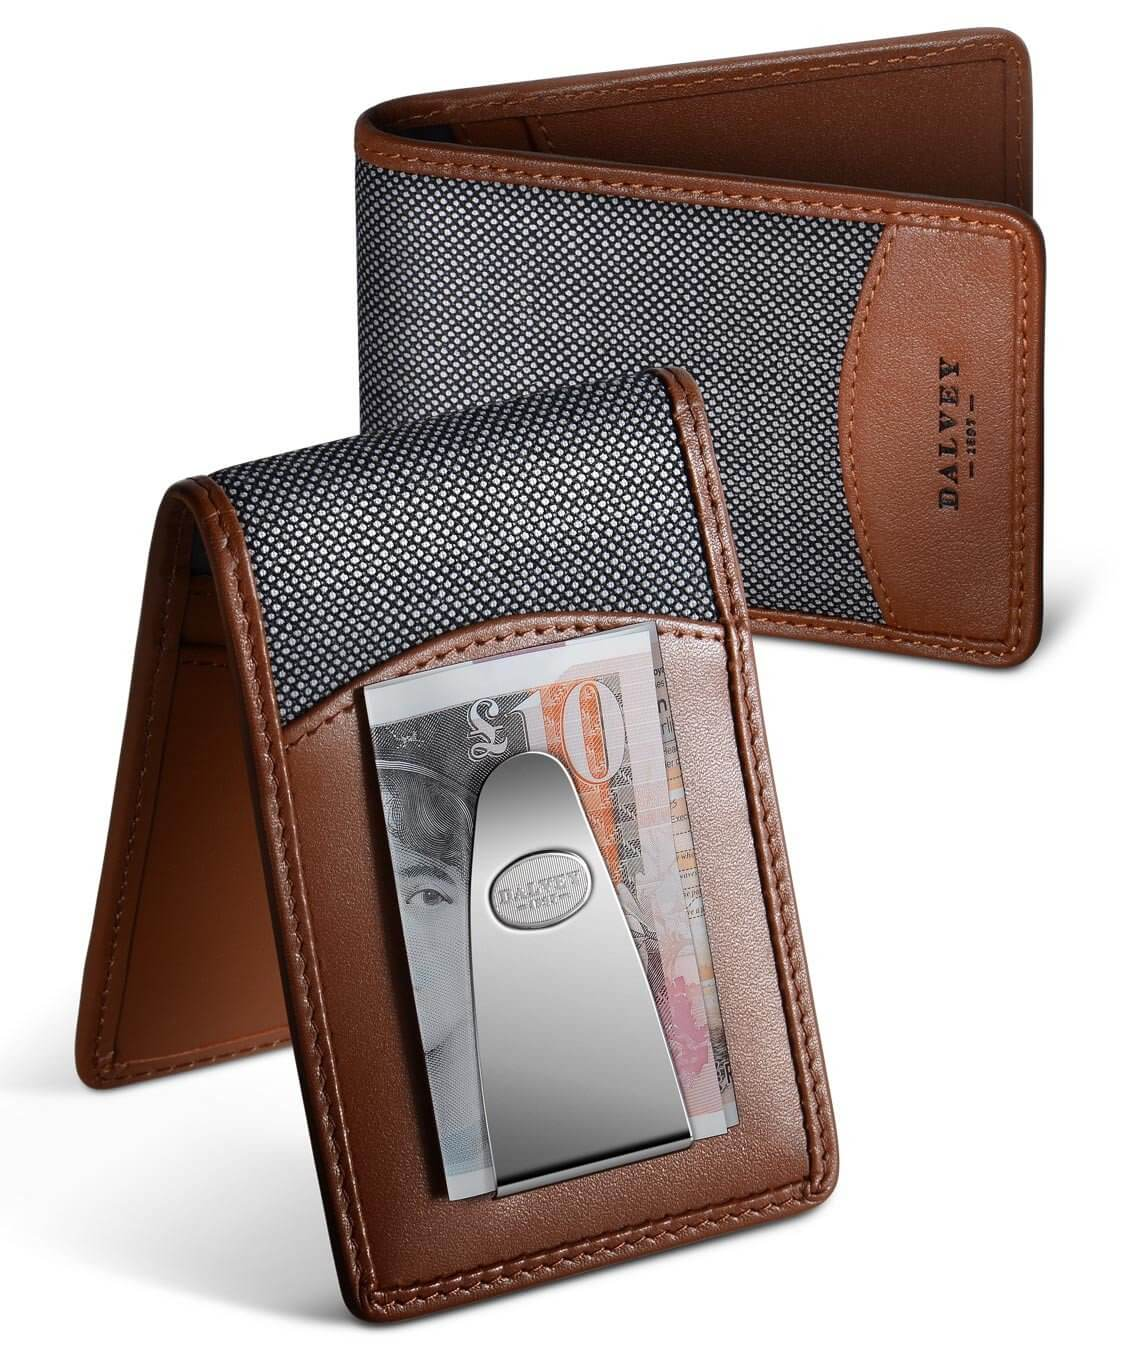 Insignia Wallet - Tan & Grey Birdseye